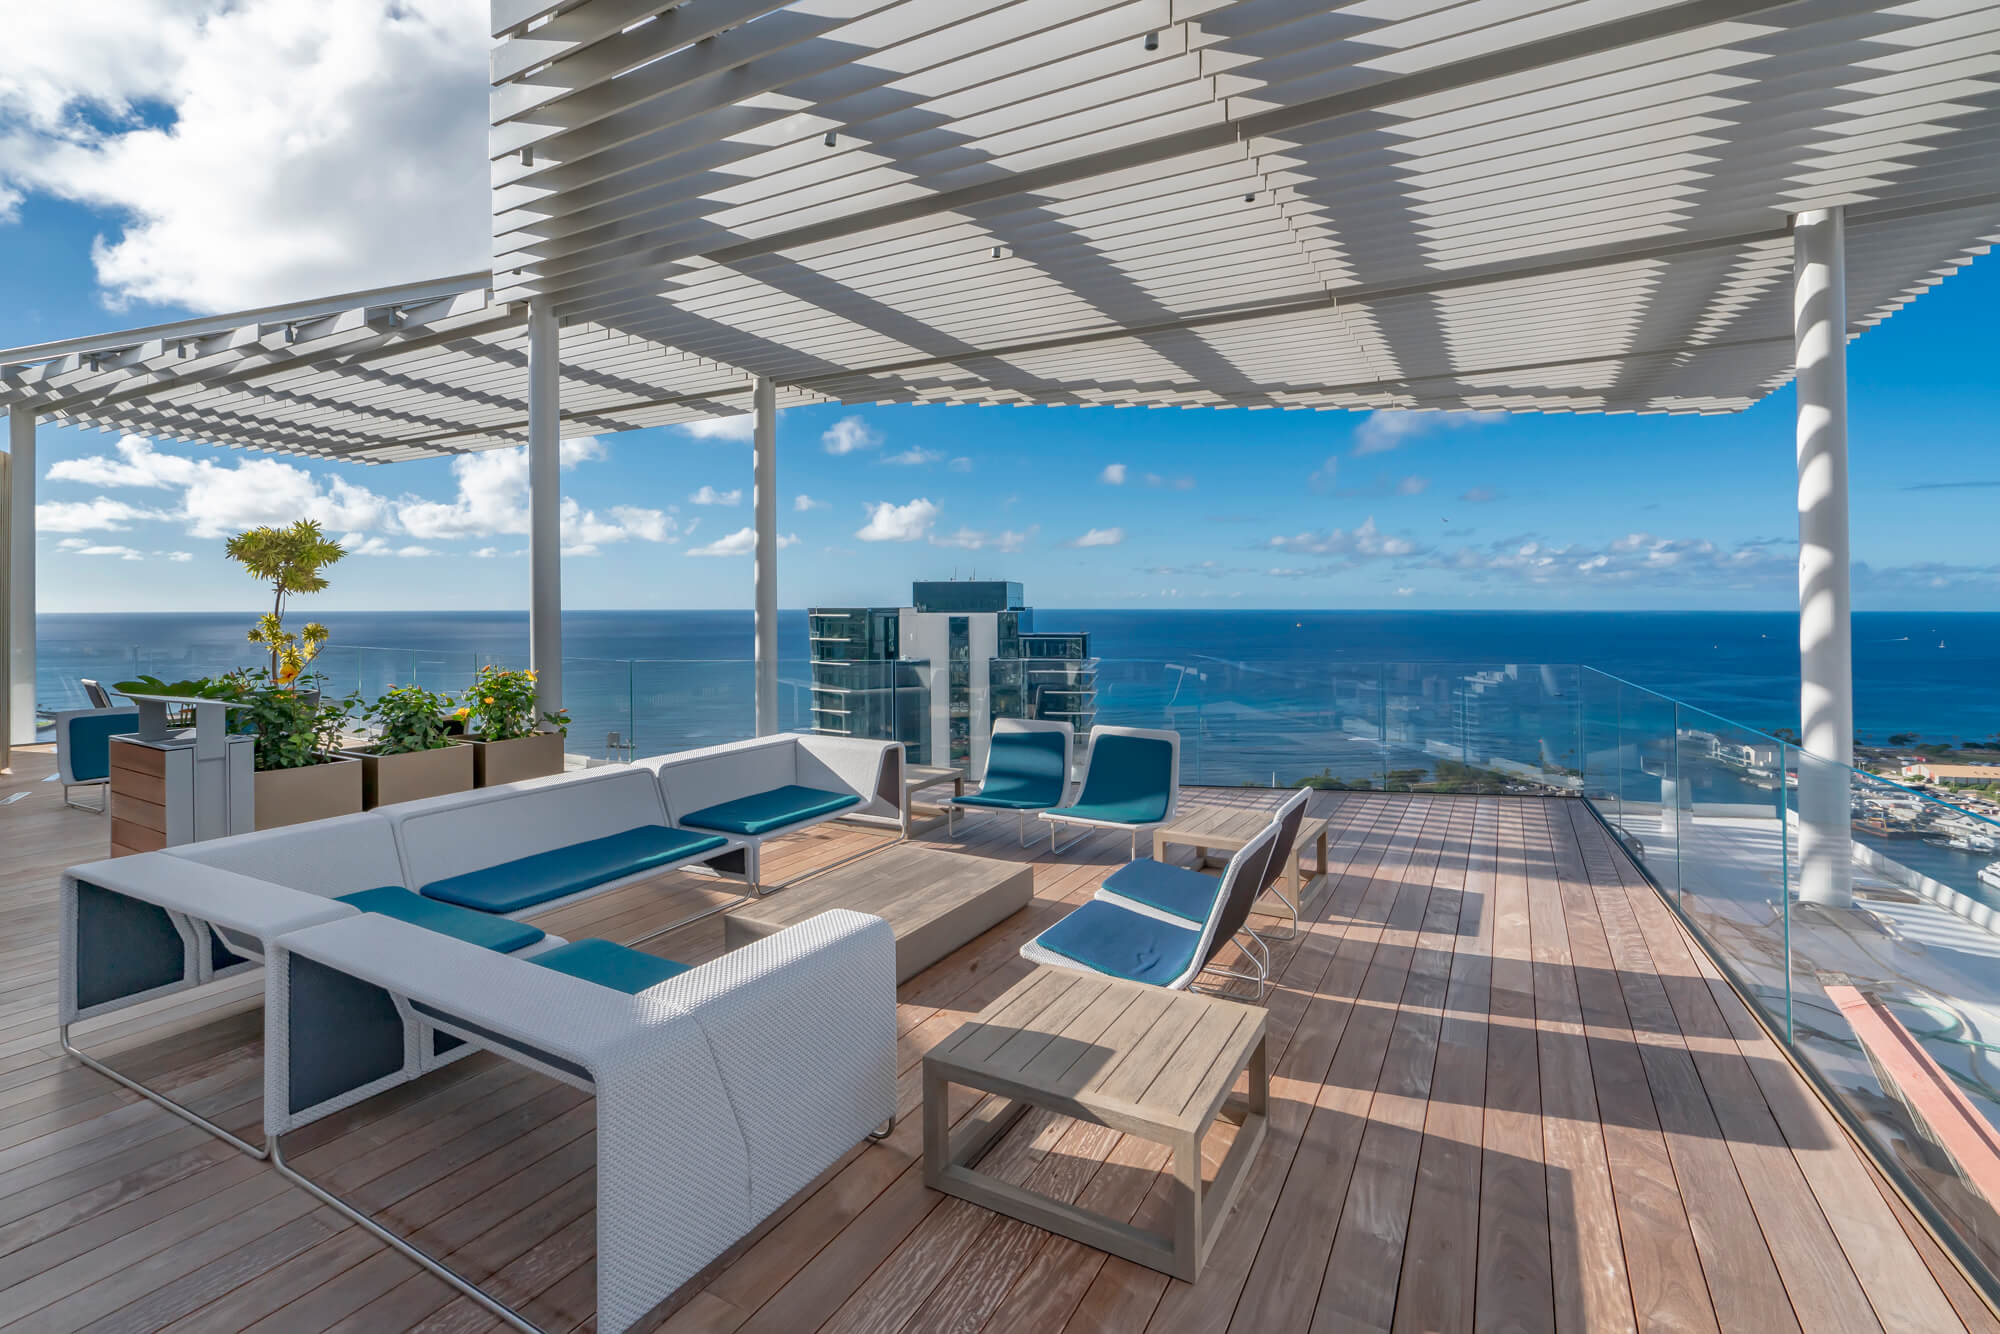 Ae'o Roof top Deck